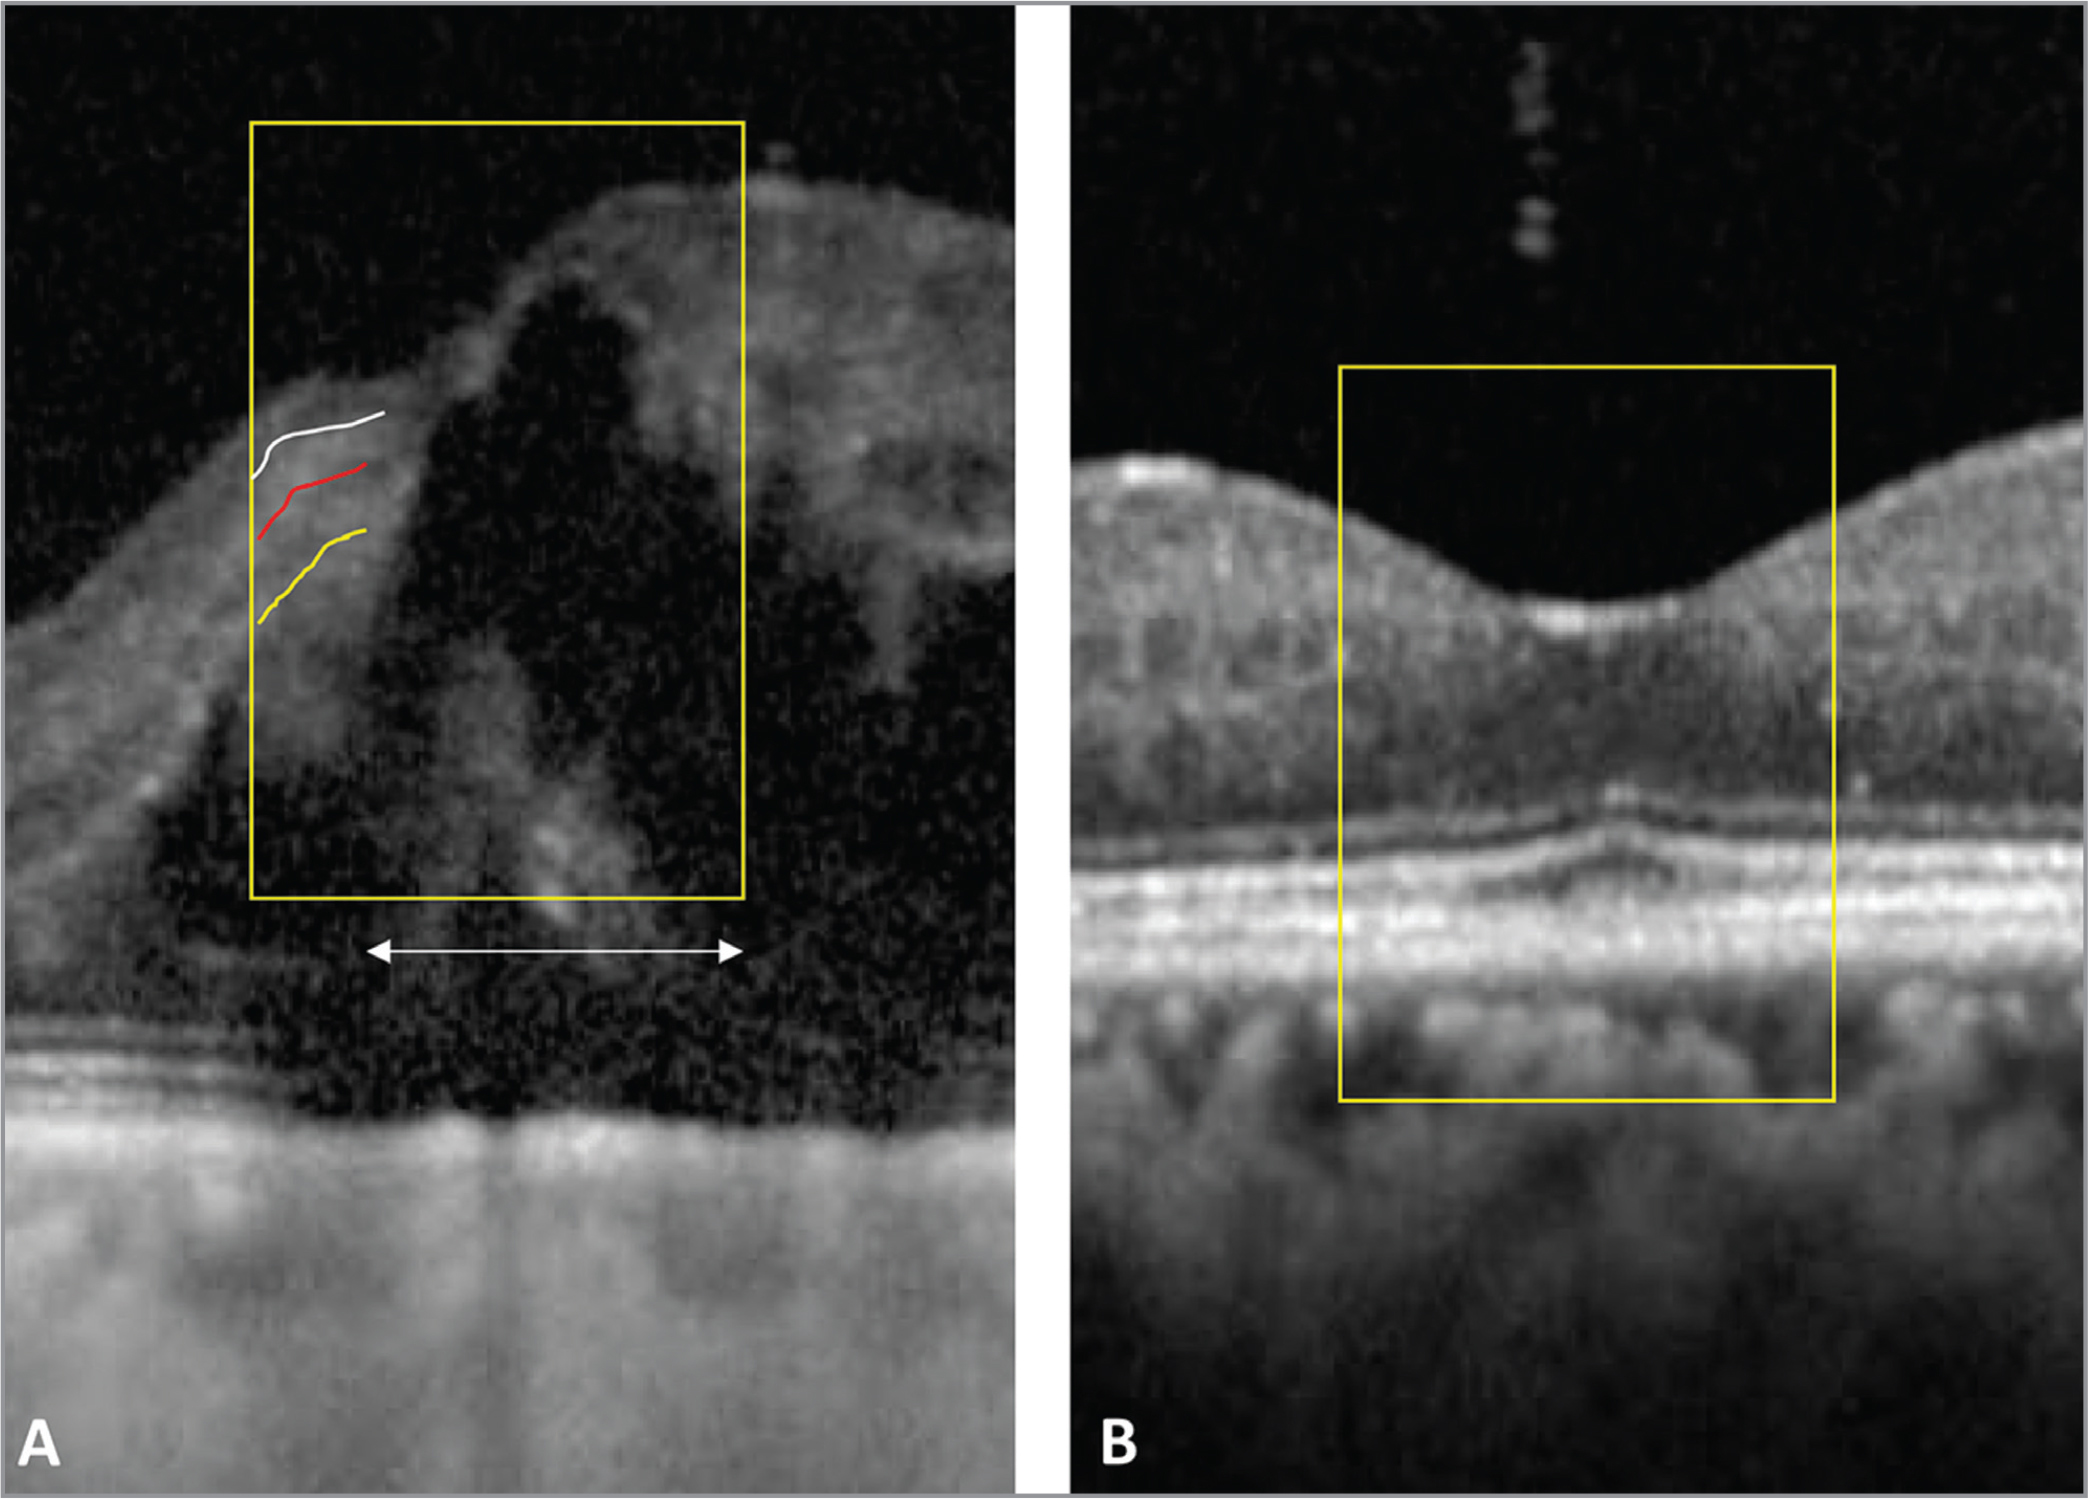 Optical coherence tomography showing foveal cystoid macular edema (CME) at baseline (A). The yellow box represents the central 1,000 μm and the discontinuities in the white (ganglion cell layer-inner plexiform layer [GCL-IPL] and inner nuclear layer [INL] interface), red (INL and outer plexiform layer [OPL] interface), and yellow (OPL and outer nuclear layer interface) lines represent the disorganized retinal inner layers (DRIL). The white double-ended arrow indicates the DRIL length. Visual acuity (VA) was 20/80 at baseline. Following anti-vascular endothelial growth factor intravitreal injections there was resolution of CME and at 13 months of follow-up, VA improved to 20/25 with resolution of DRIL (B).